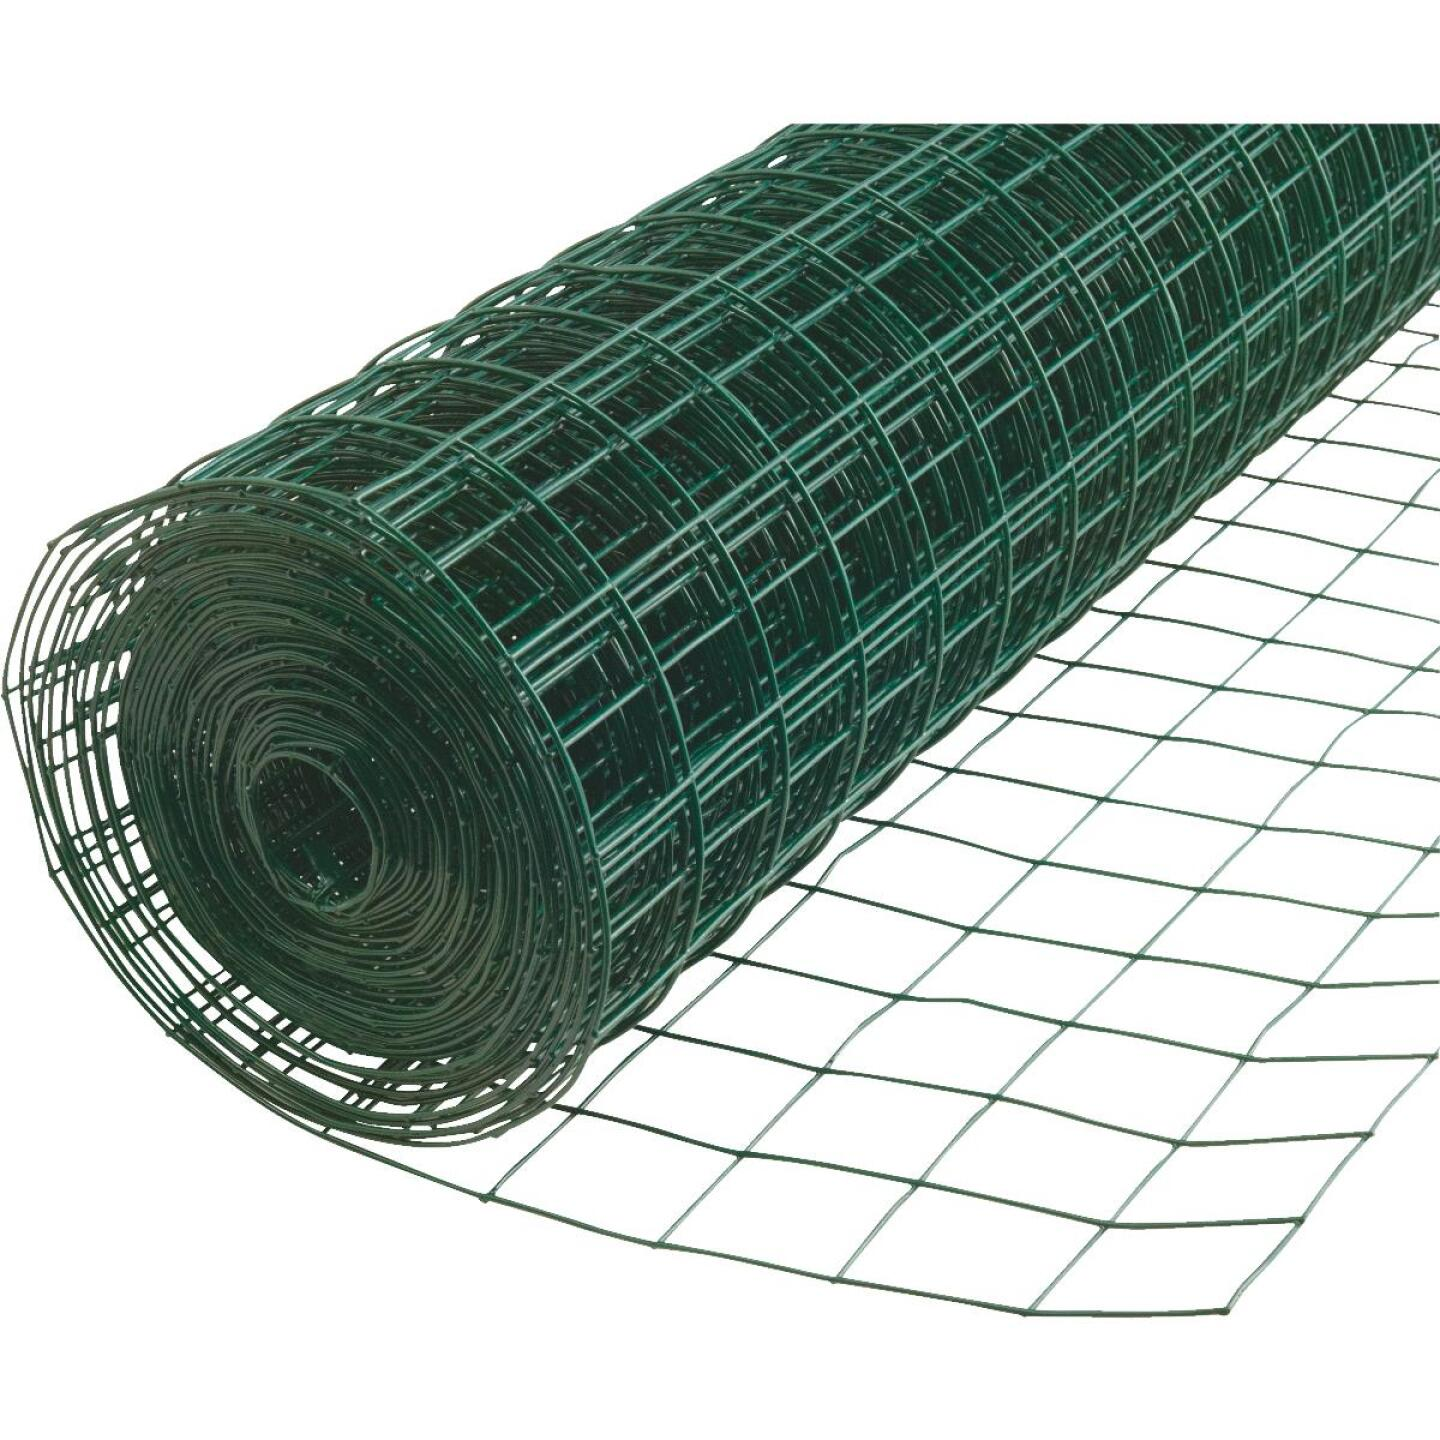 Do it 48 In. x 50 Ft. (2x4) Vinyl-Coated Galvanized Welded Wire Fence Image 1